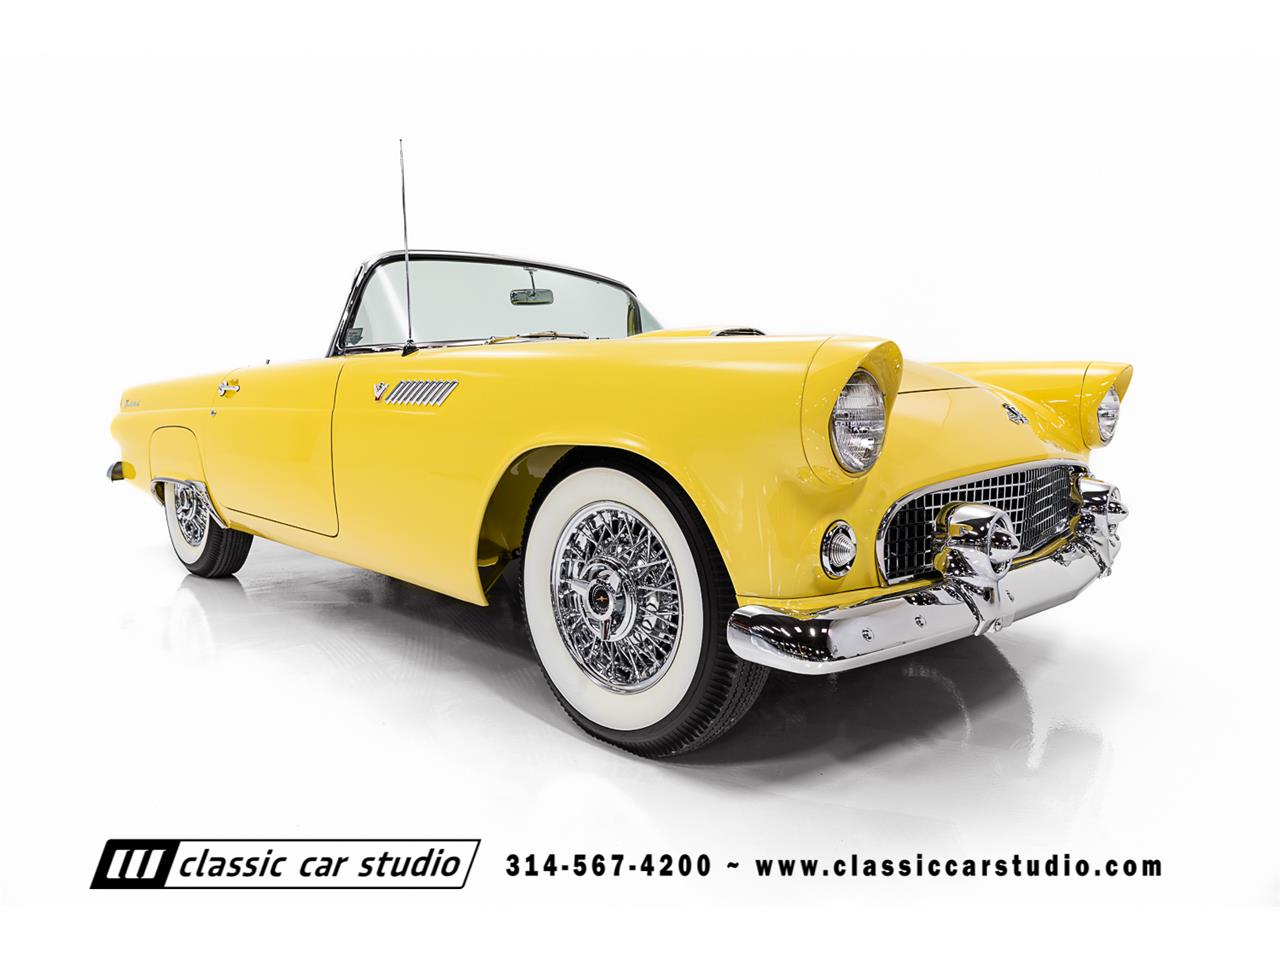 Large Picture of Classic '55 Ford Thunderbird located in SAINT LOUIS Missouri - PKP1